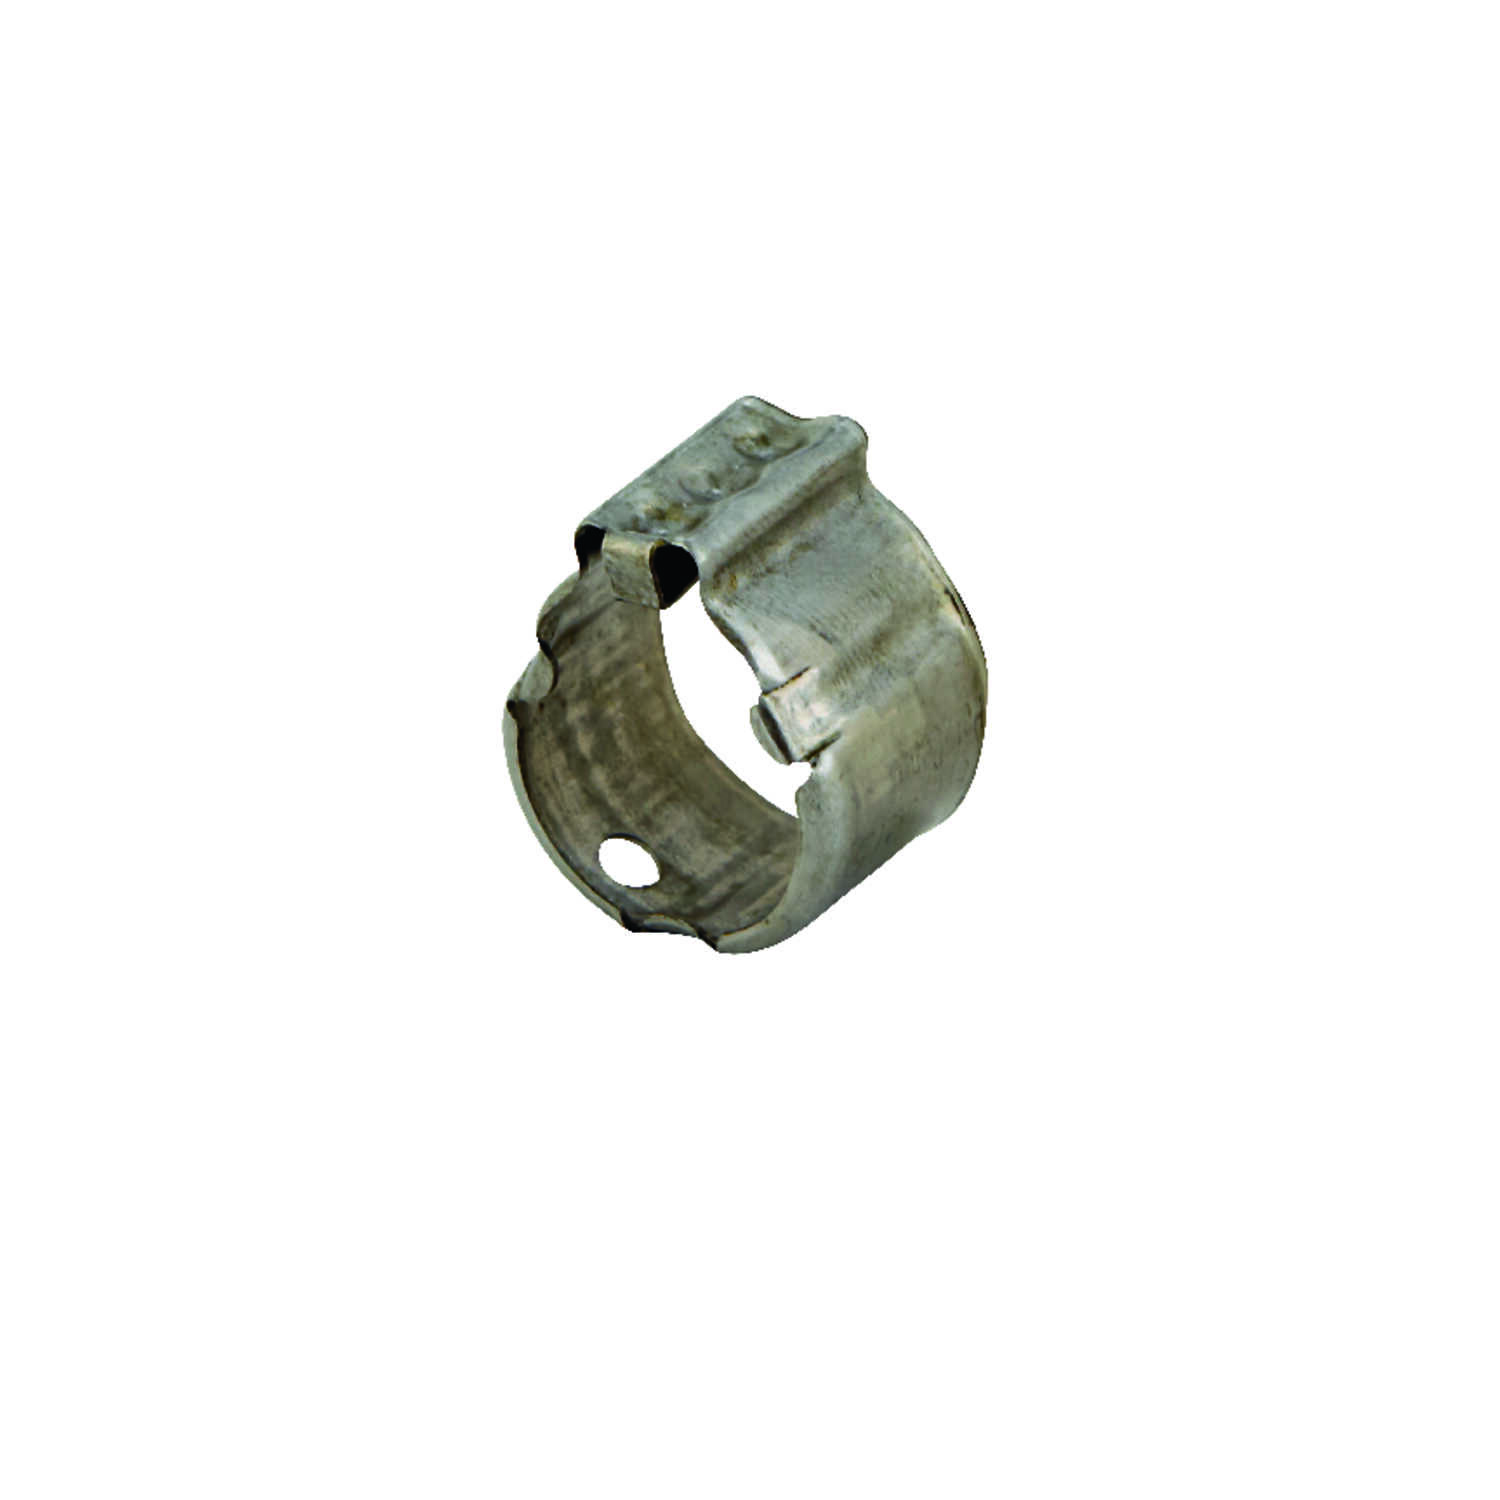 Zurn  Qickclamp  1/2 in. CTS   x 1/2 in. Dia. CTS  Crimp Ring